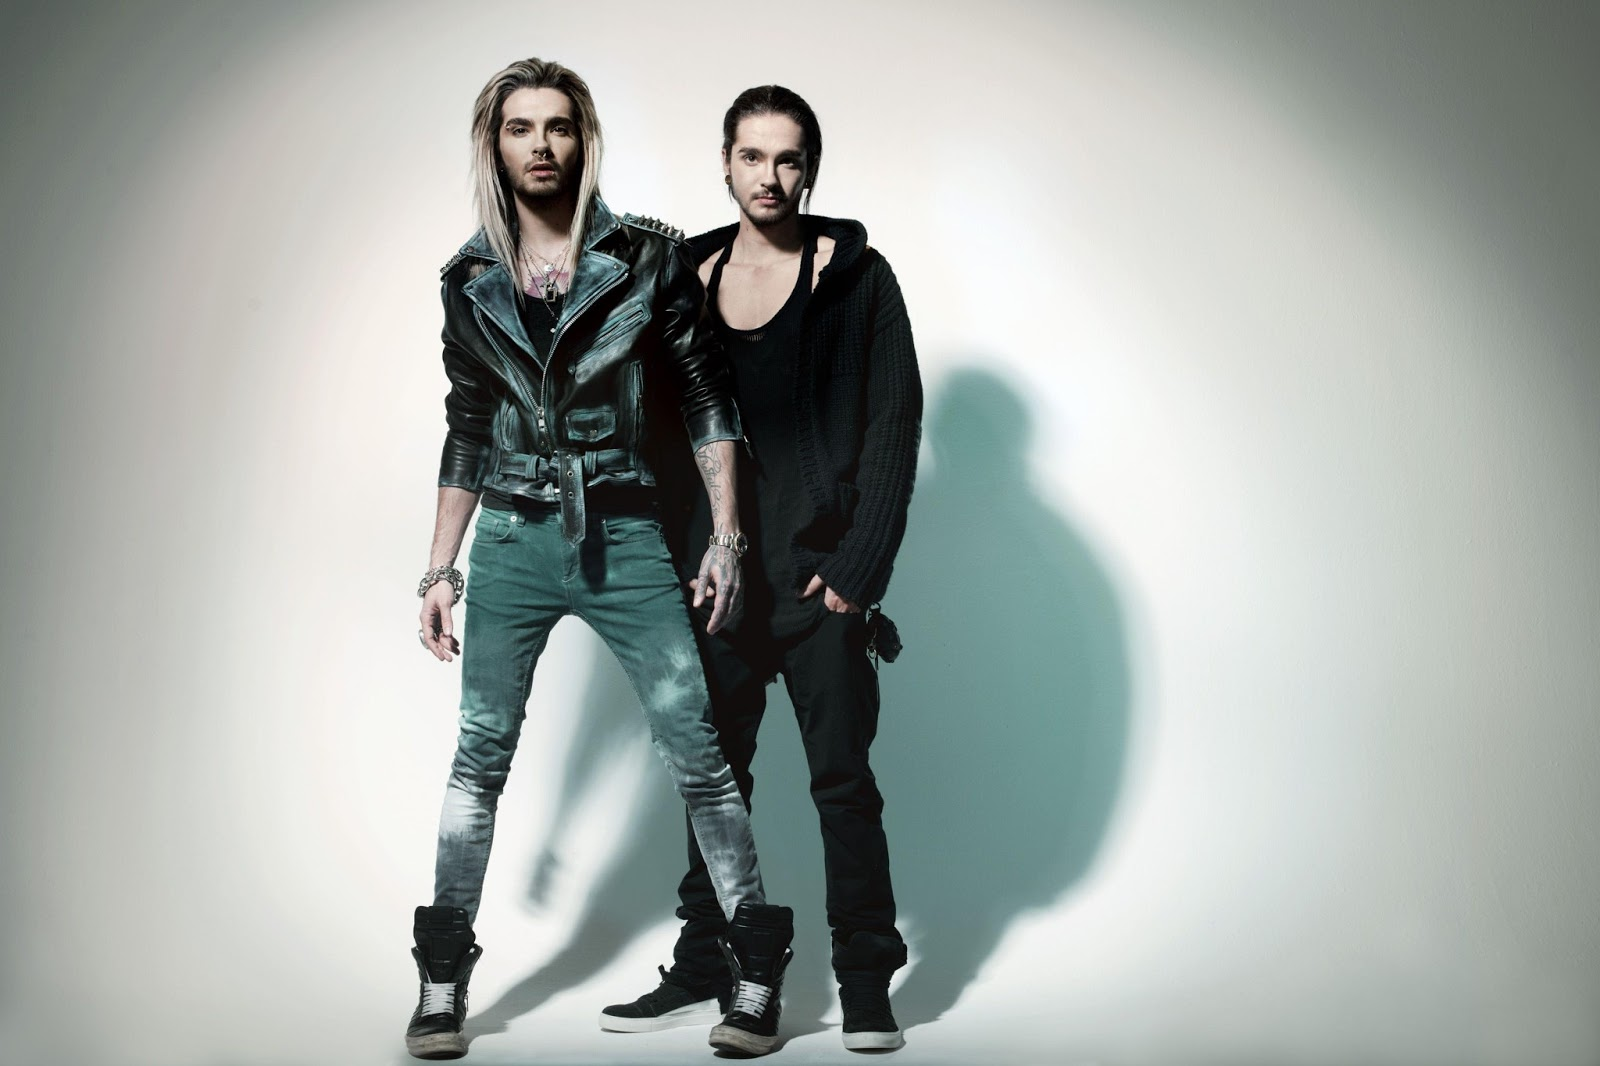 NEW HQ PICS] Bill & Tom Kaulitz Photshoot - DSDS DreamTeam by Stephan ...: tokiohotelaliensspain.blogspot.com/2013/03/new-hq-pics-bill-tom...